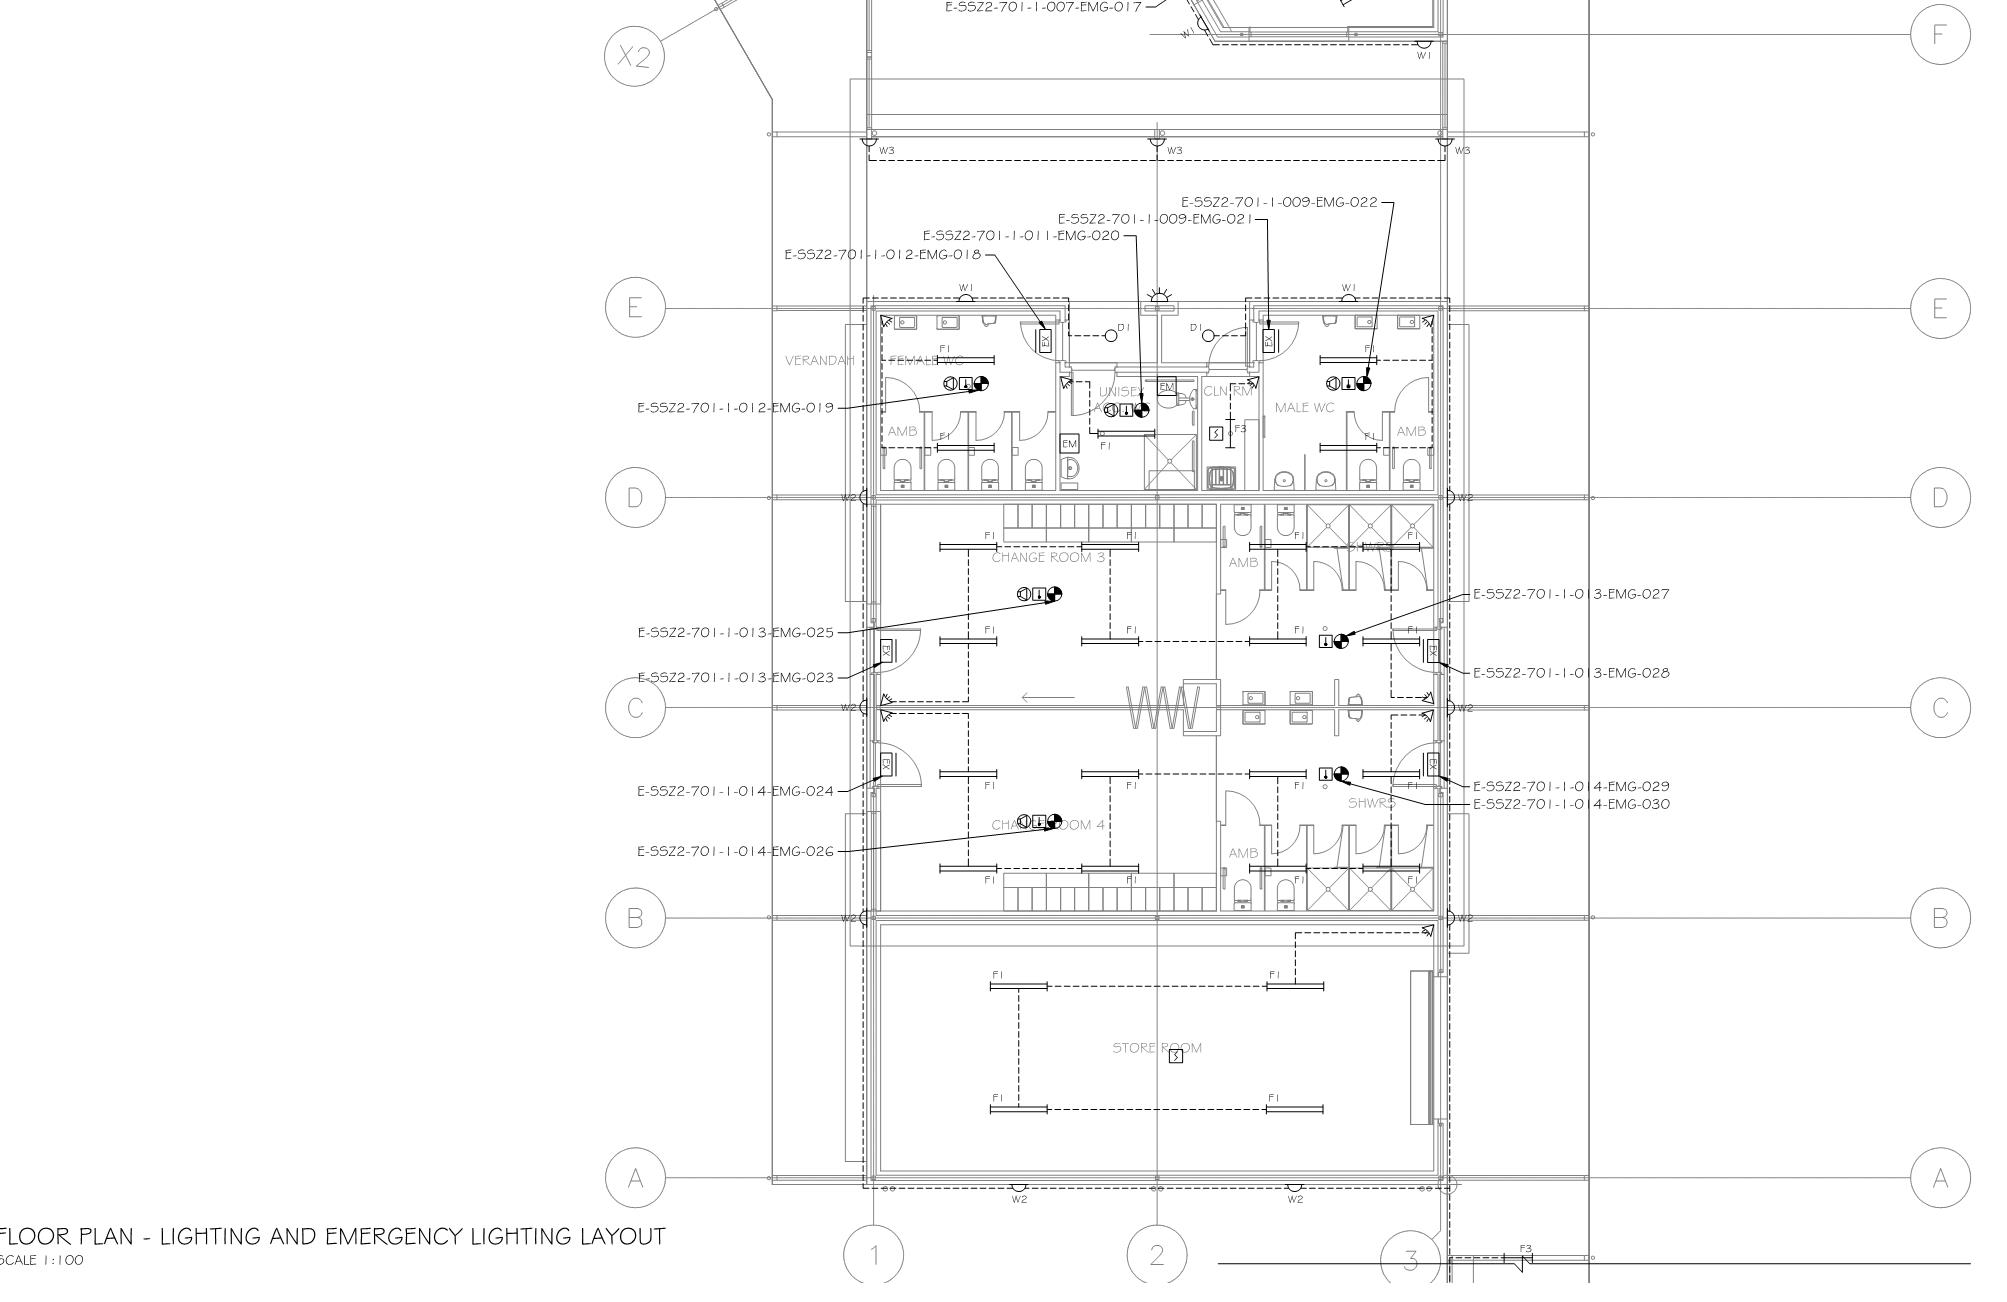 Electrical Services Cad Drafting Drawing Using In Perth